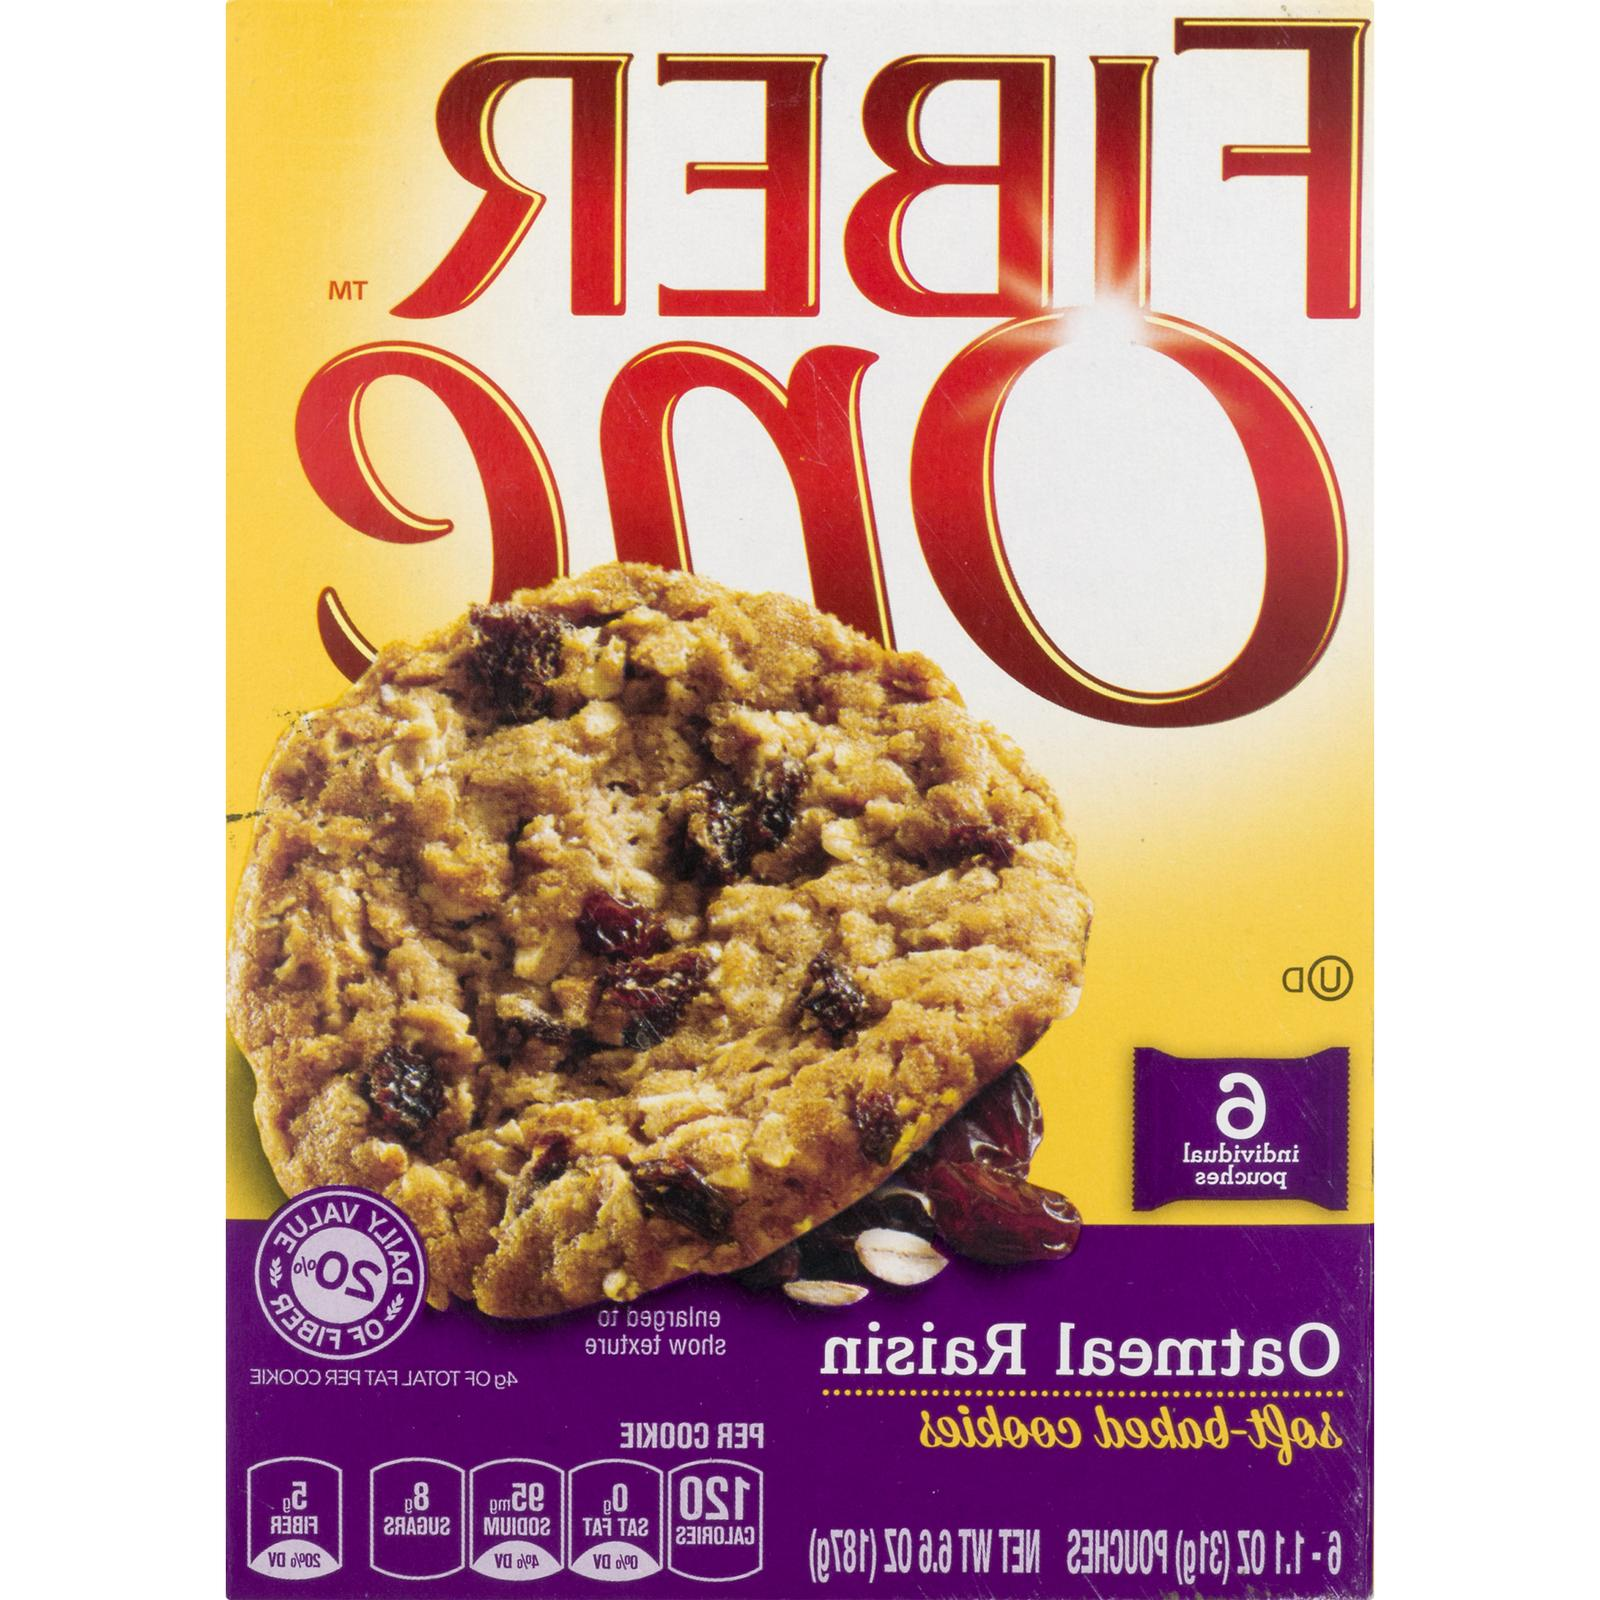 6 Boxs One Raisin Cookies, Count, Free Shipping